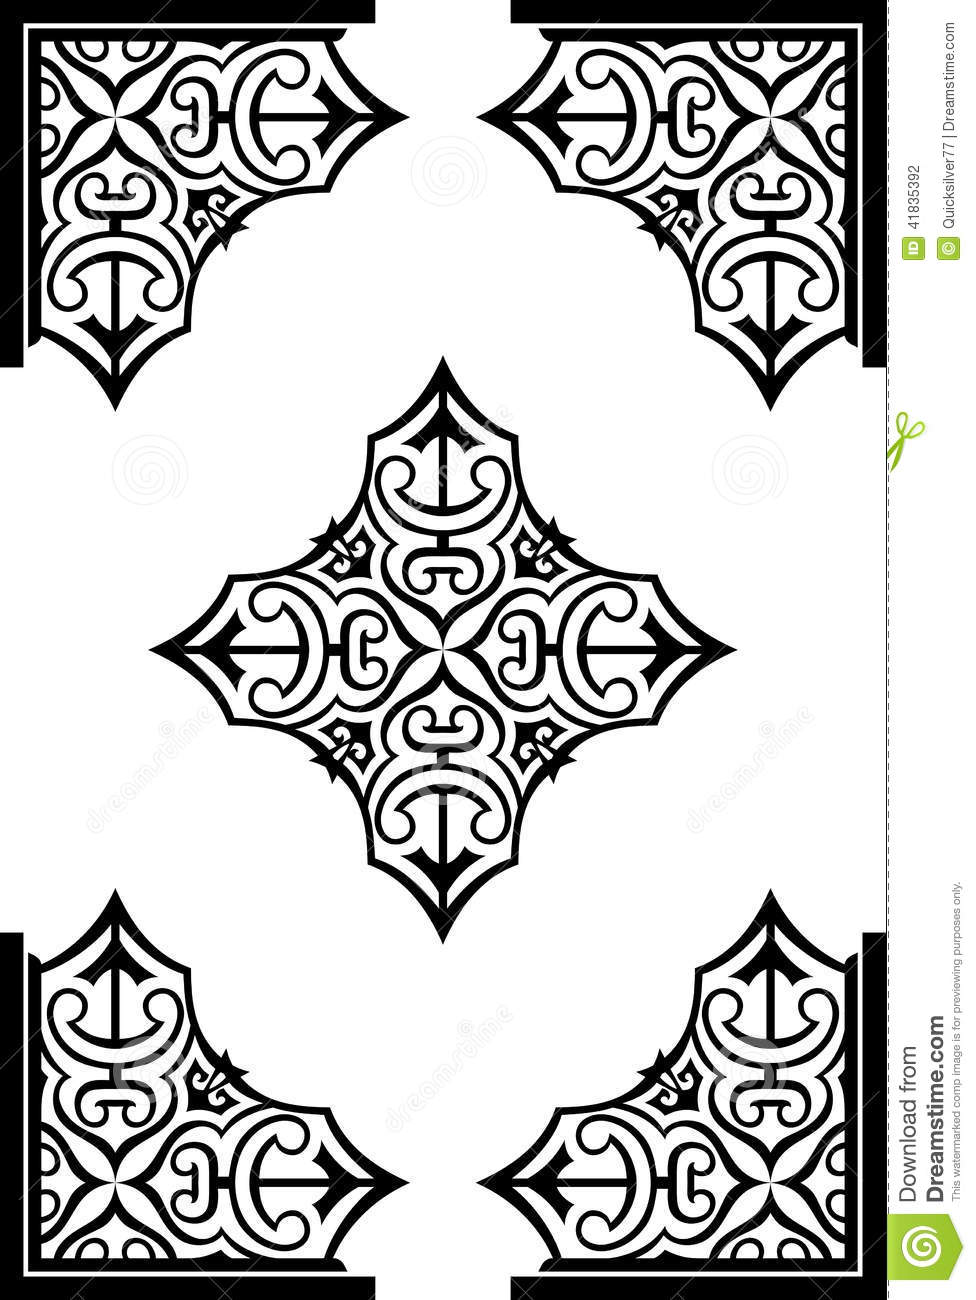 Abstract Arabesque Decor Ornaments Stock Vector Illustration Of